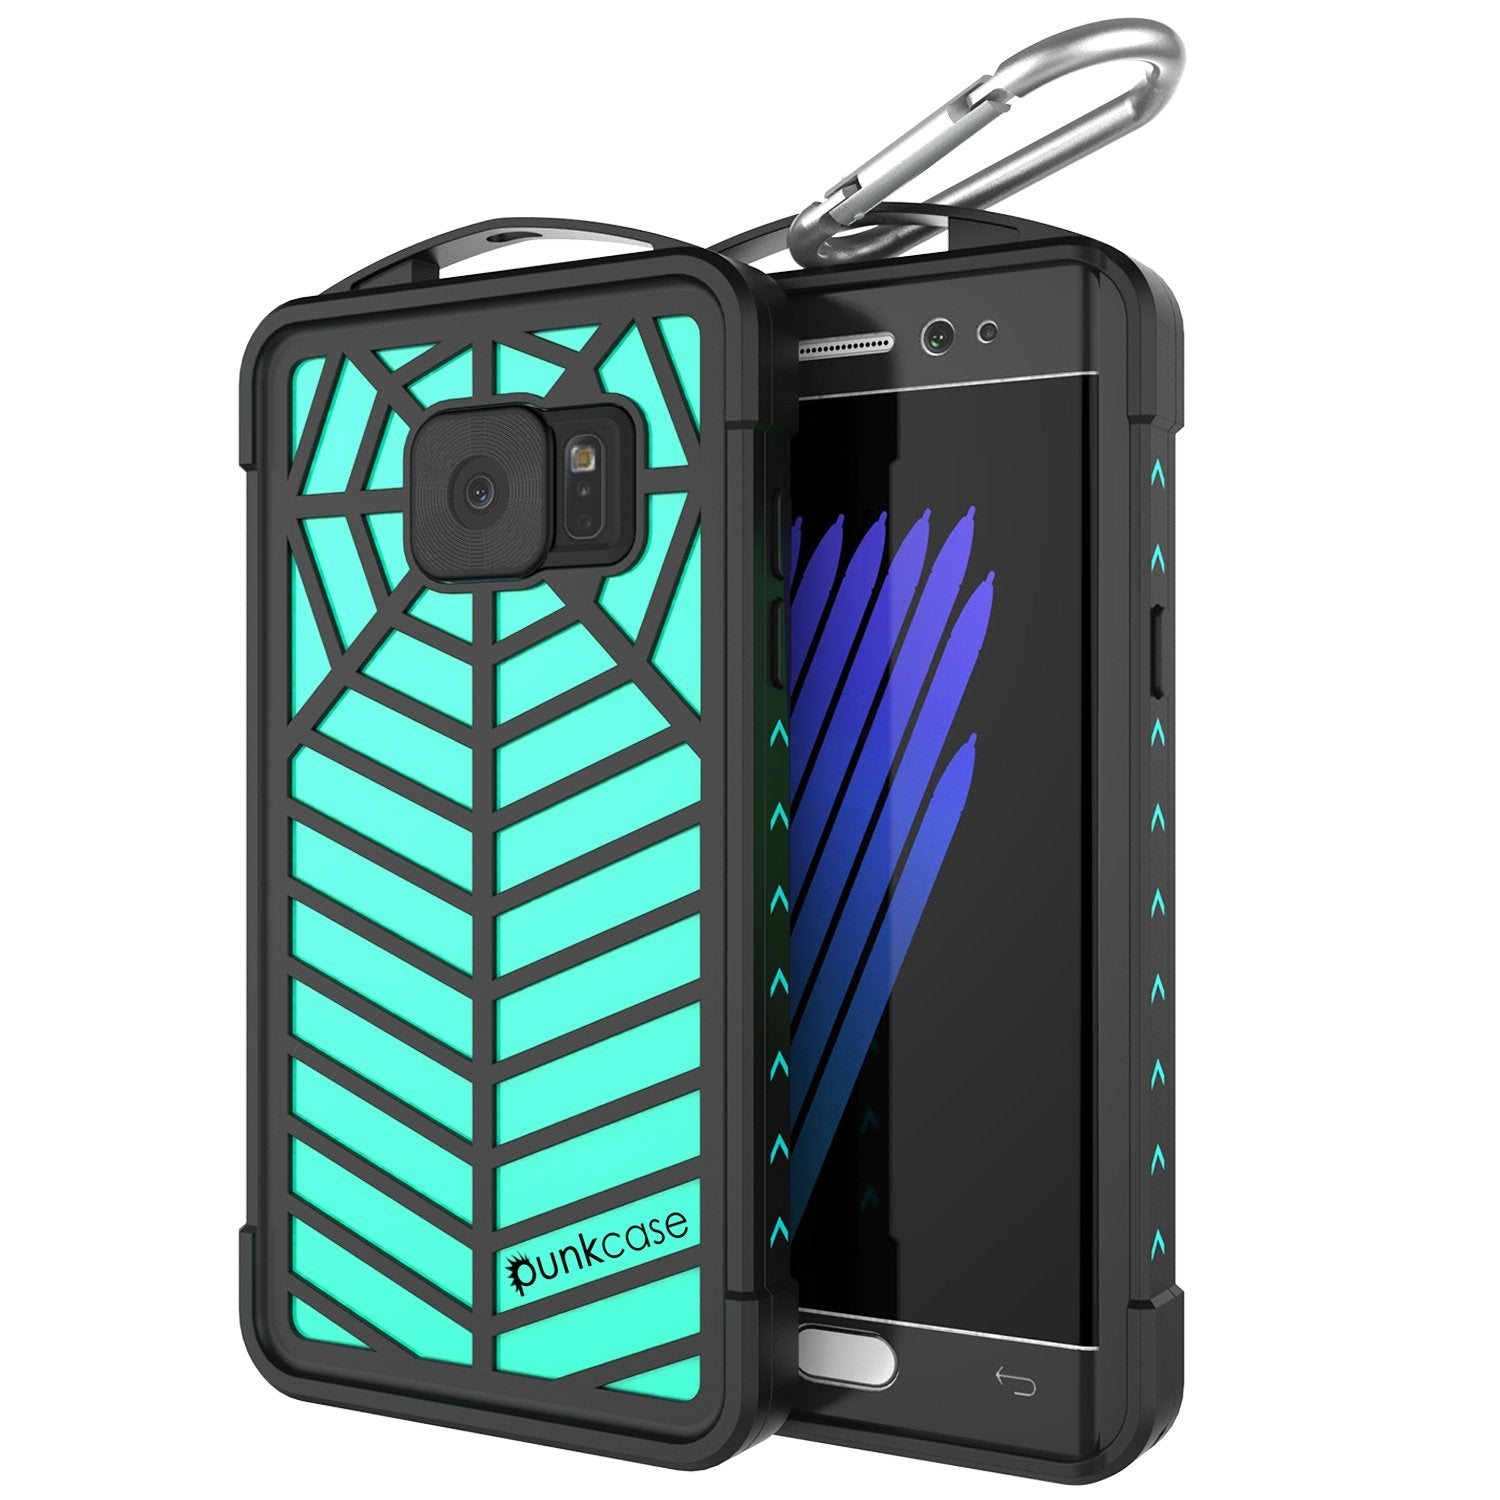 Galaxy Note FE Waterproof Case, Punkcase WEBSTER Series, Teal | Heavy Duty Armor Cover